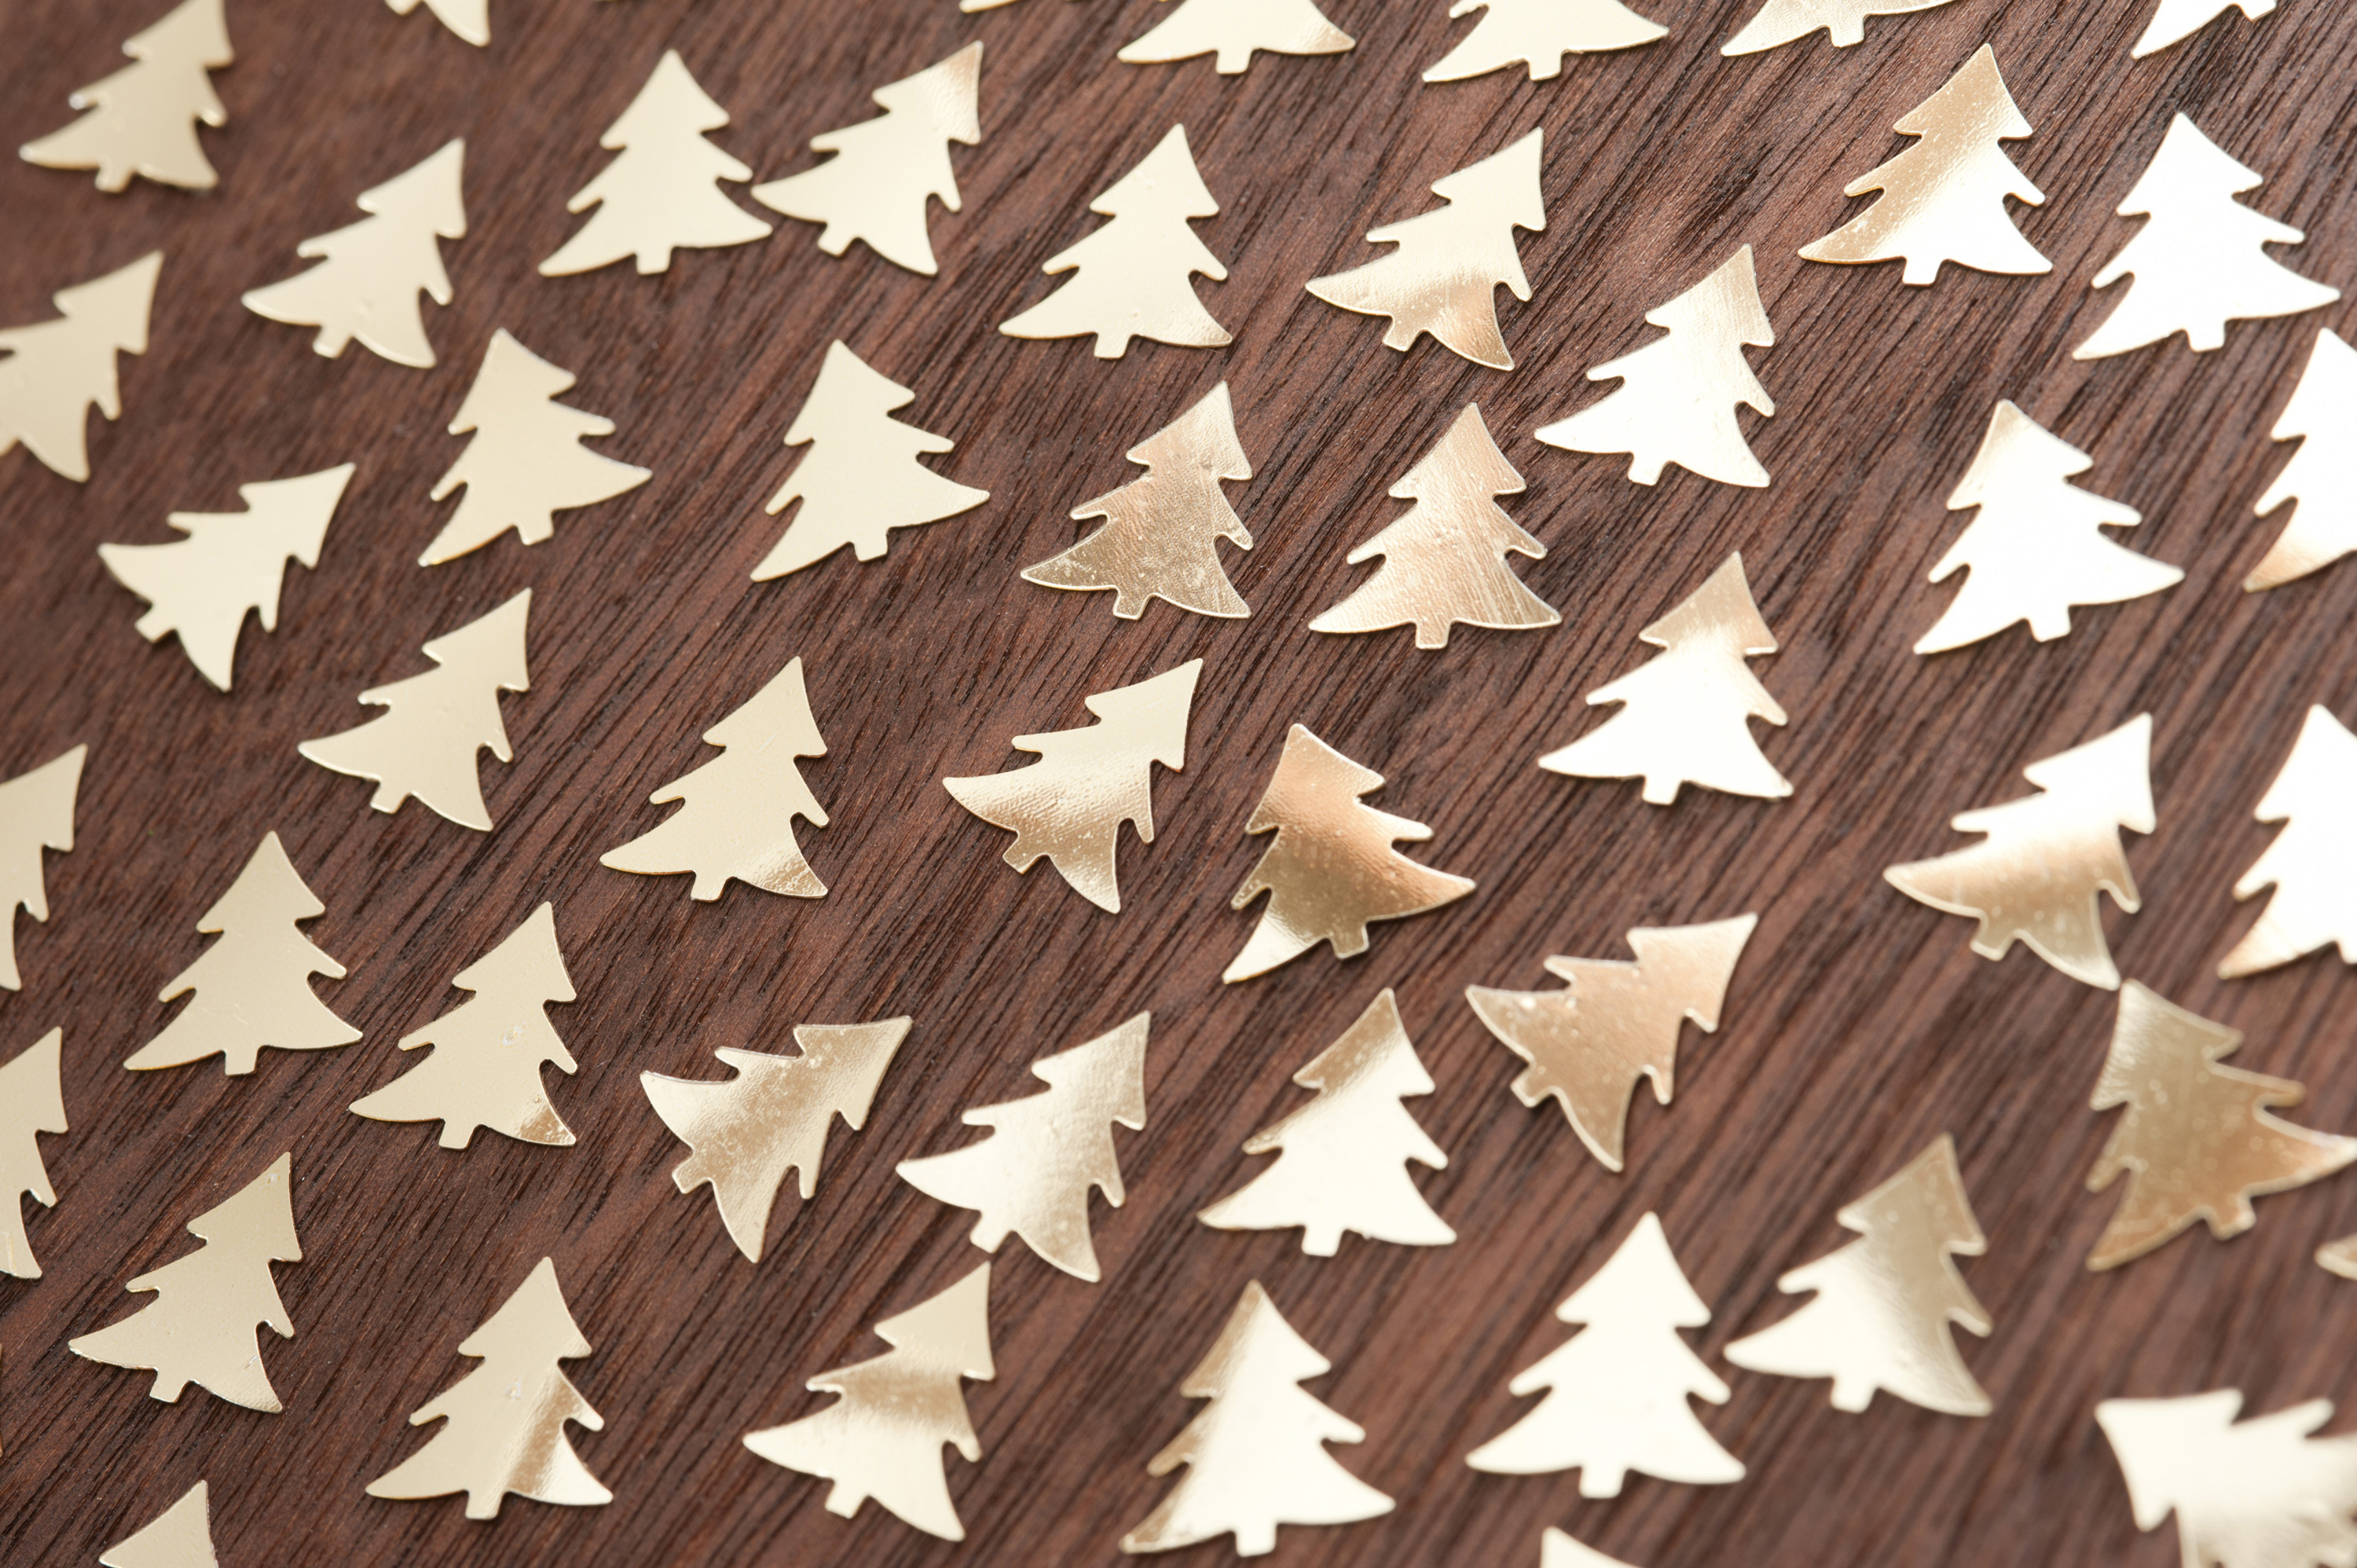 Many handmade  golden fir trees on wooden table